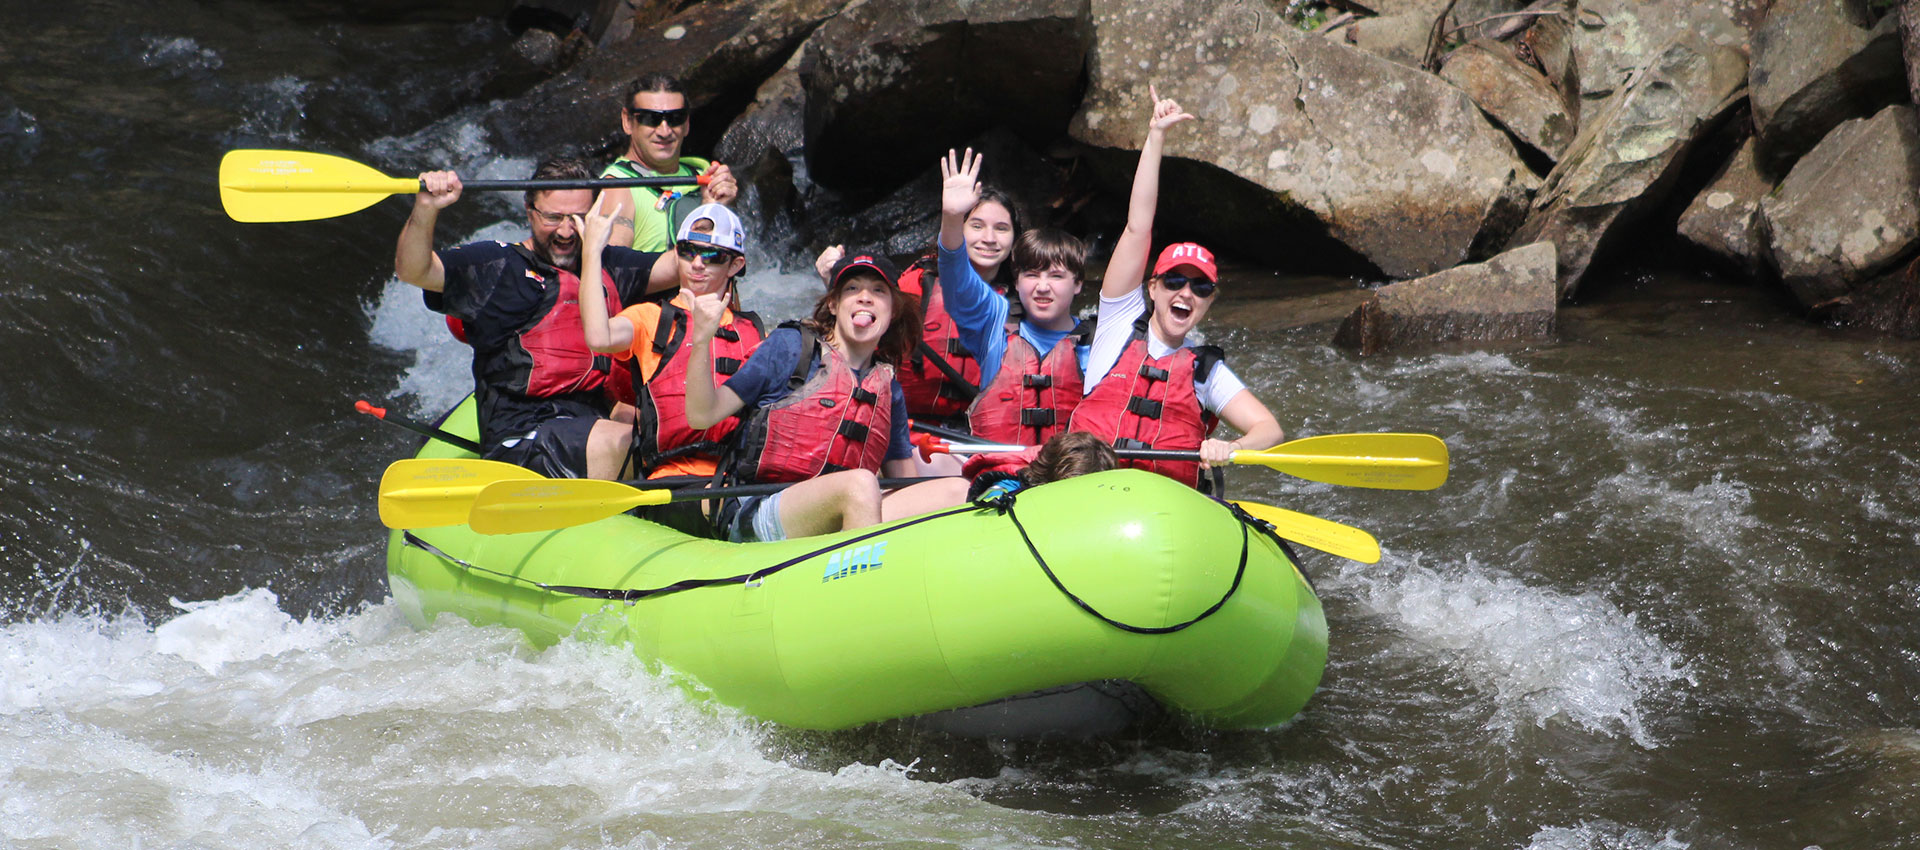 Students whitewater rafting